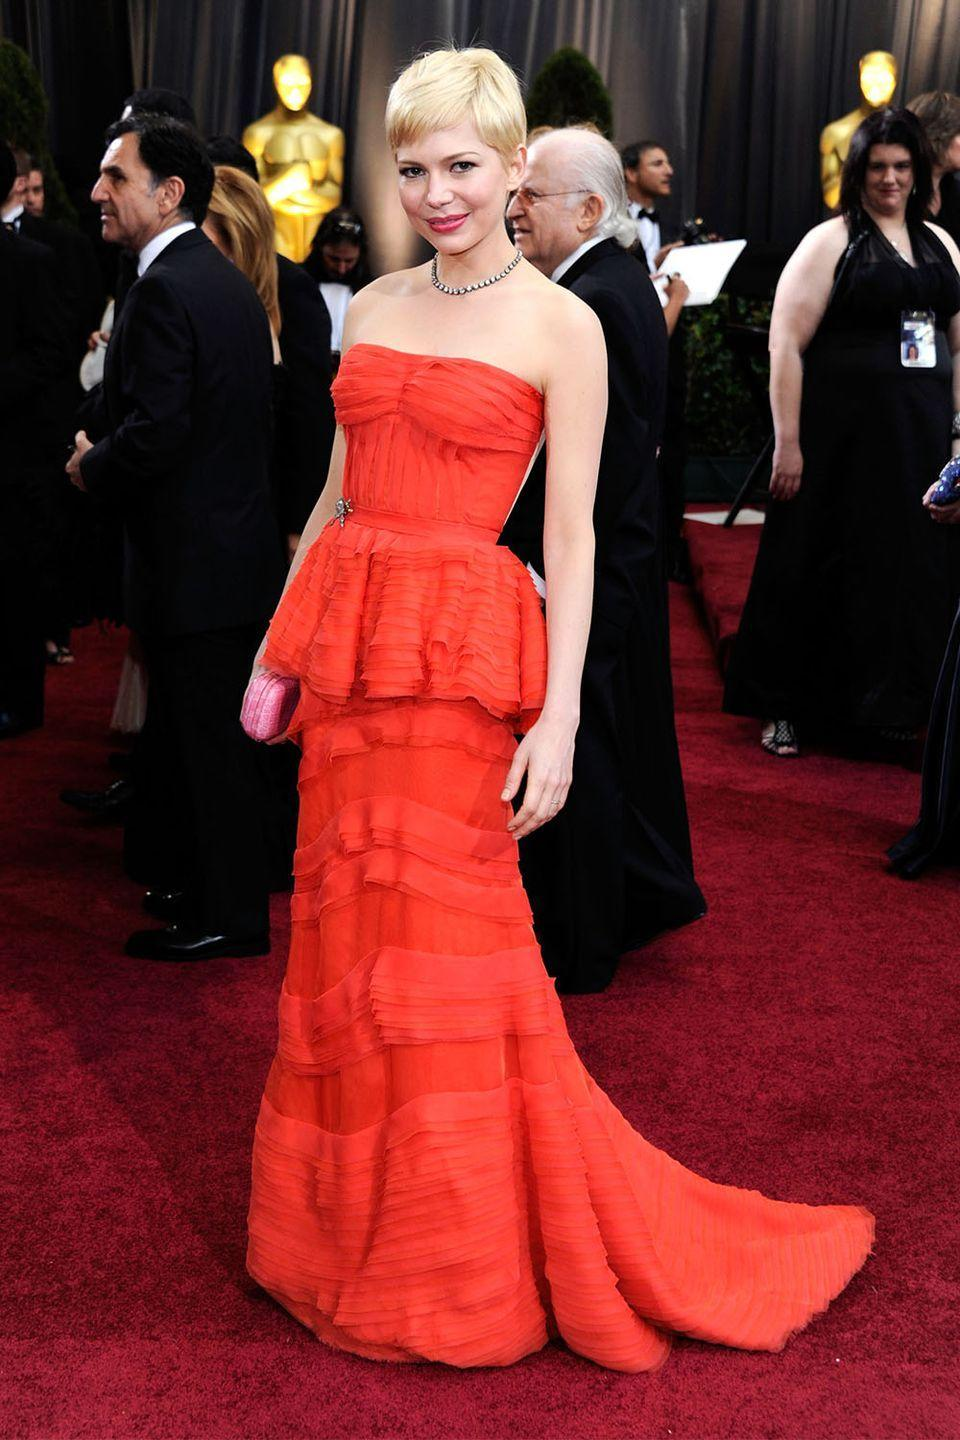 <p>Nominated for Best Actress for <em>My Week With Marilyn, </em>Michelle Williams brought the peplum back in this red tulle Louis Vuitton gown and matching lip. </p>